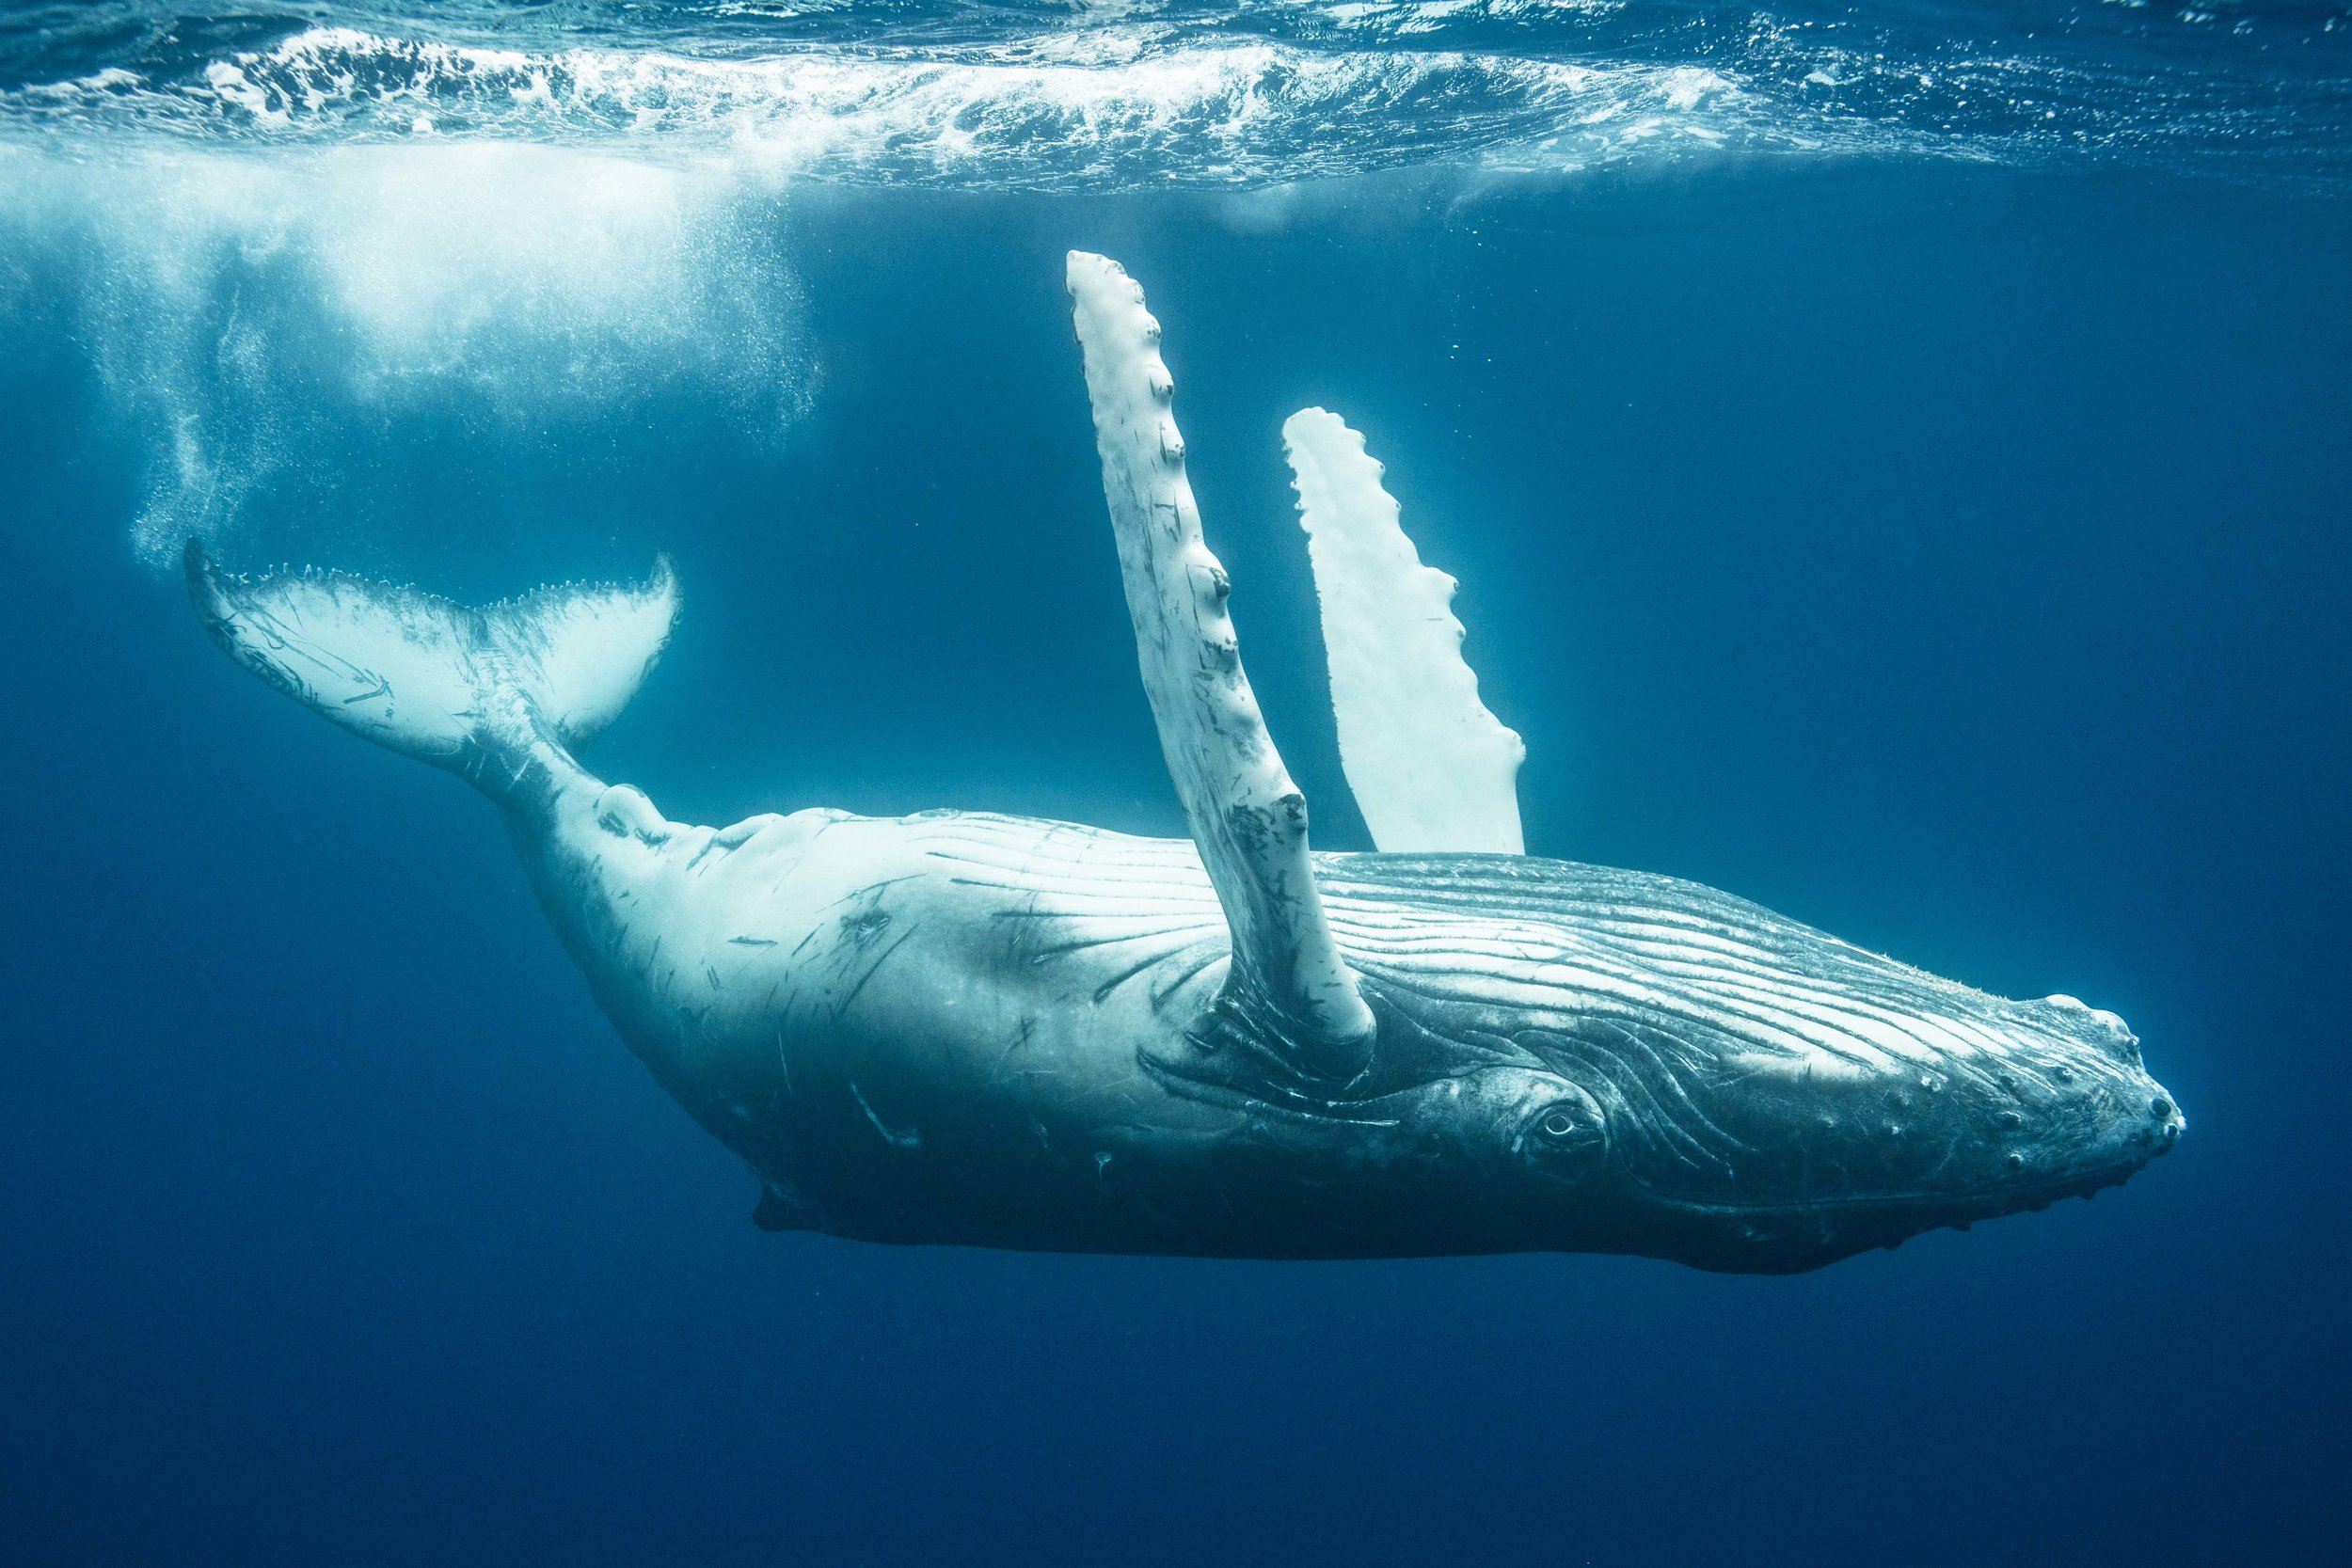 A baby humpback whale rolls around at the surface of the ocean. Vava'u, Tonga. Photo: Matt Reichel.